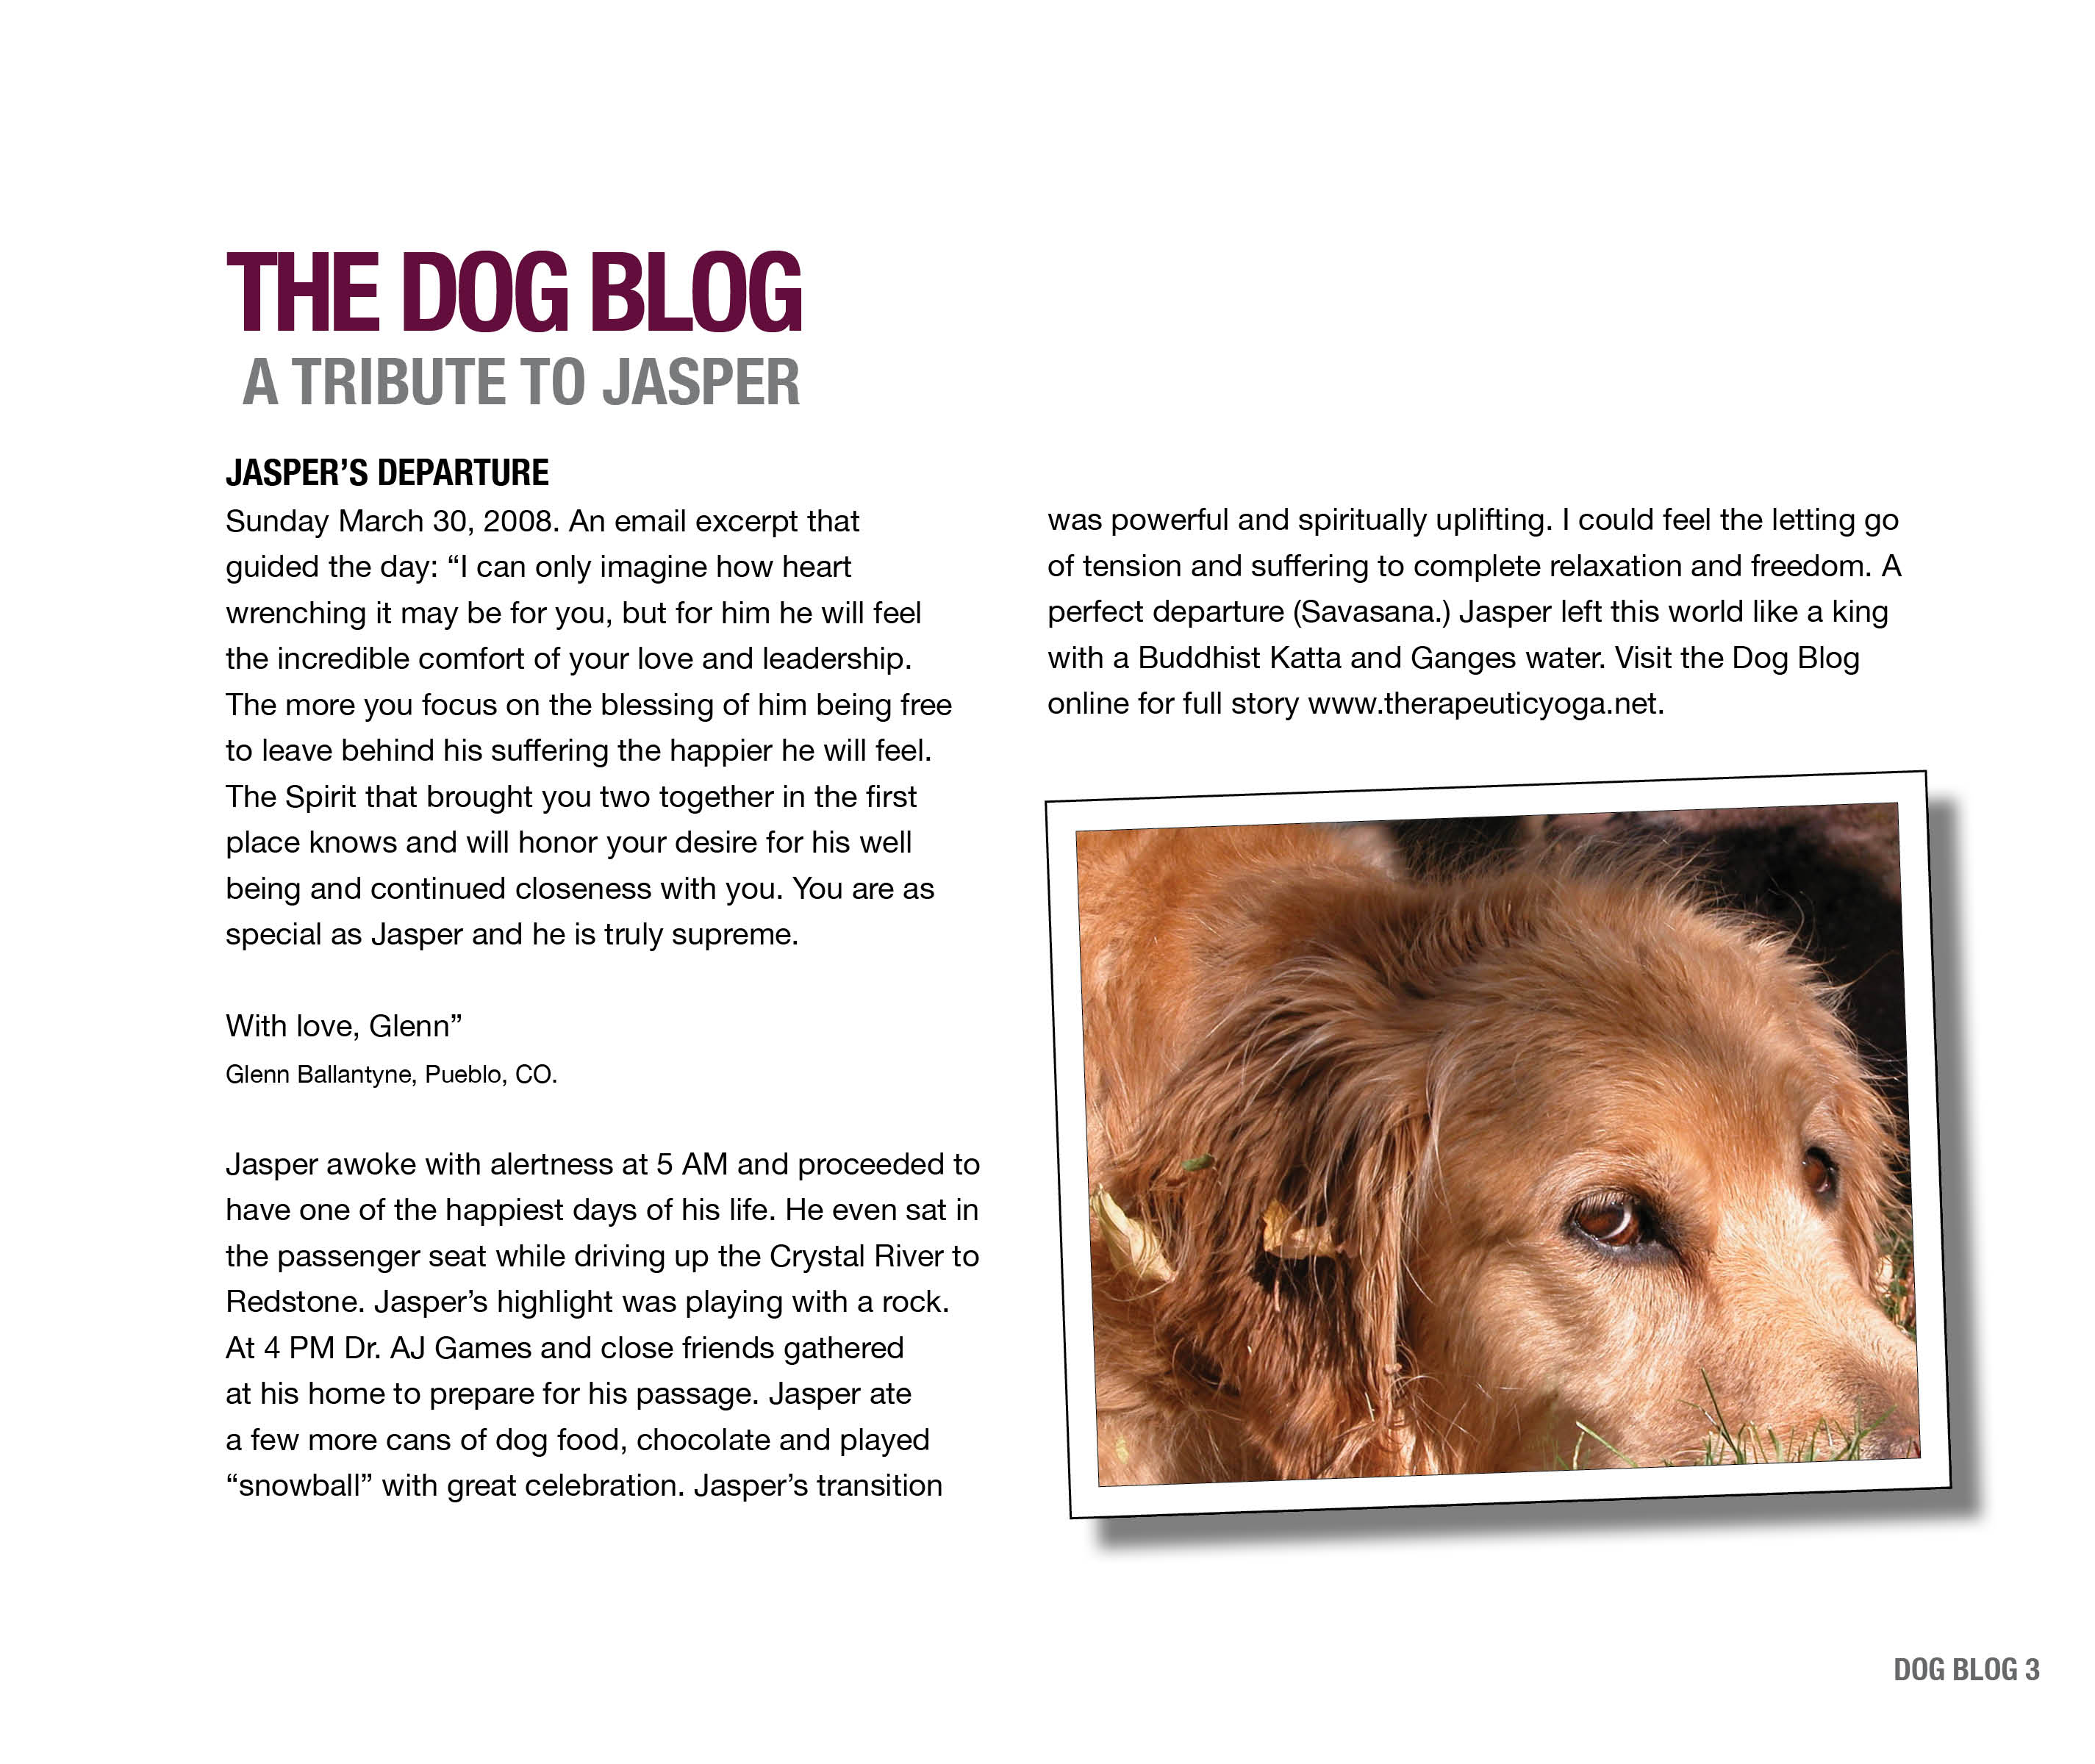 DogBlogPages2